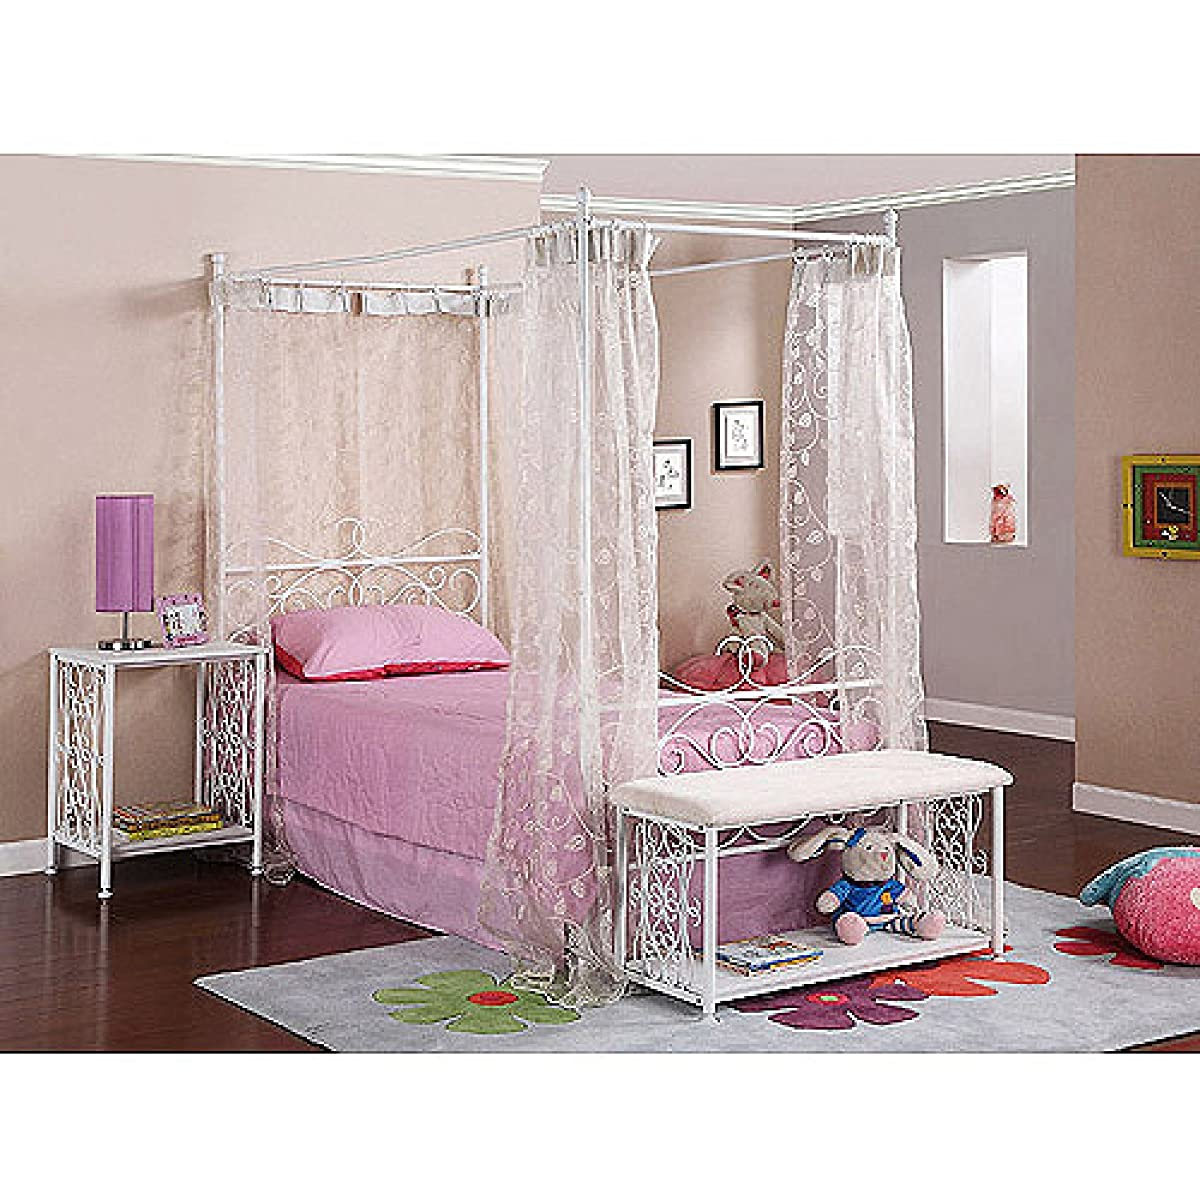 Canopy Wrought Iron Princess Bed White